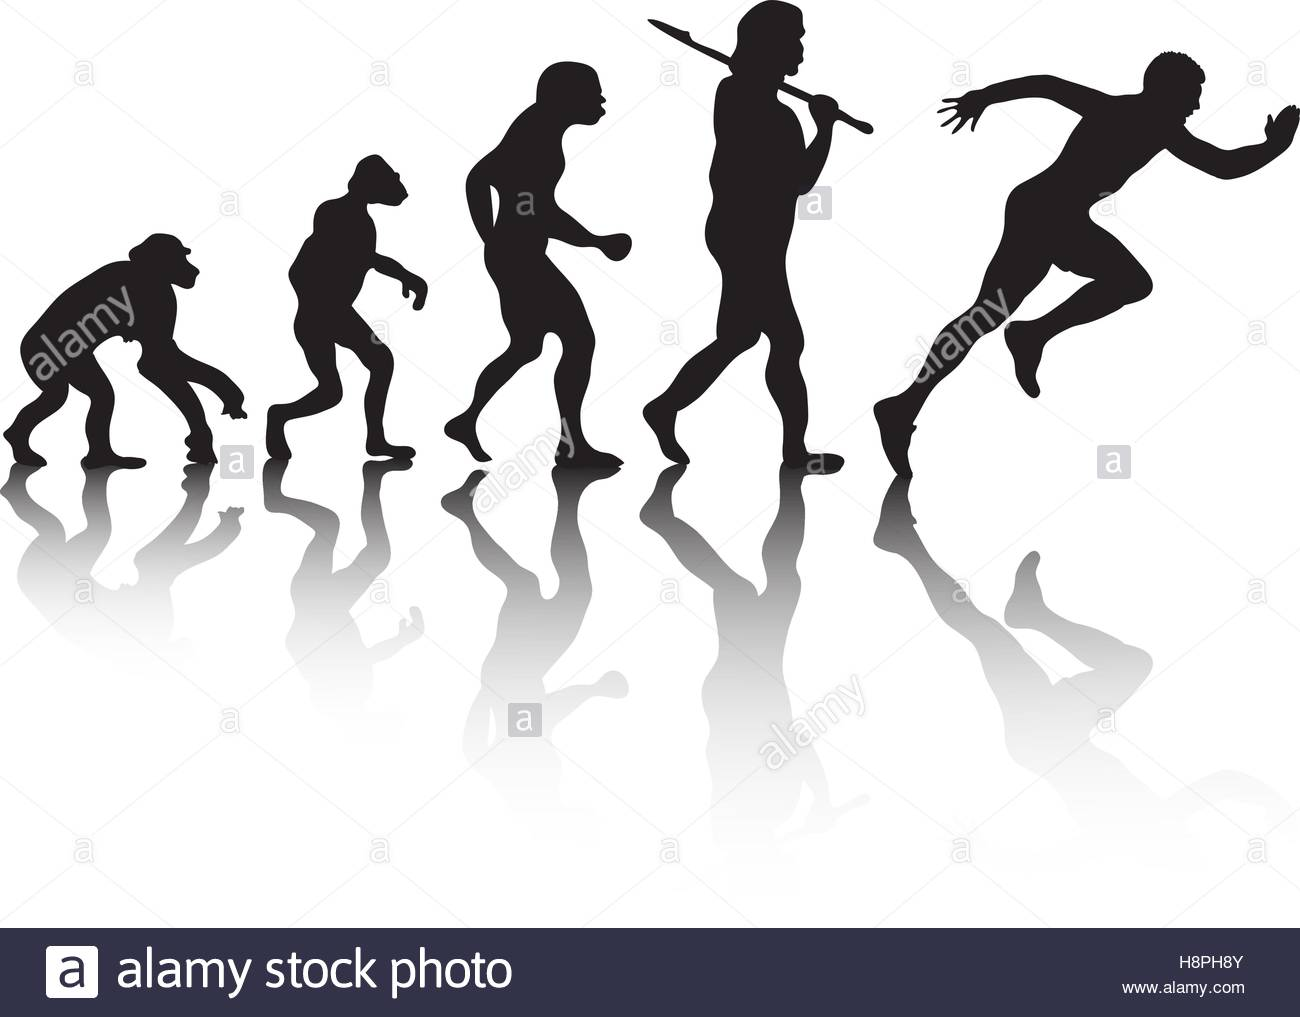 1300x1017 The Evolution, Silhouette People. Darwin S Theory. Vector Stock